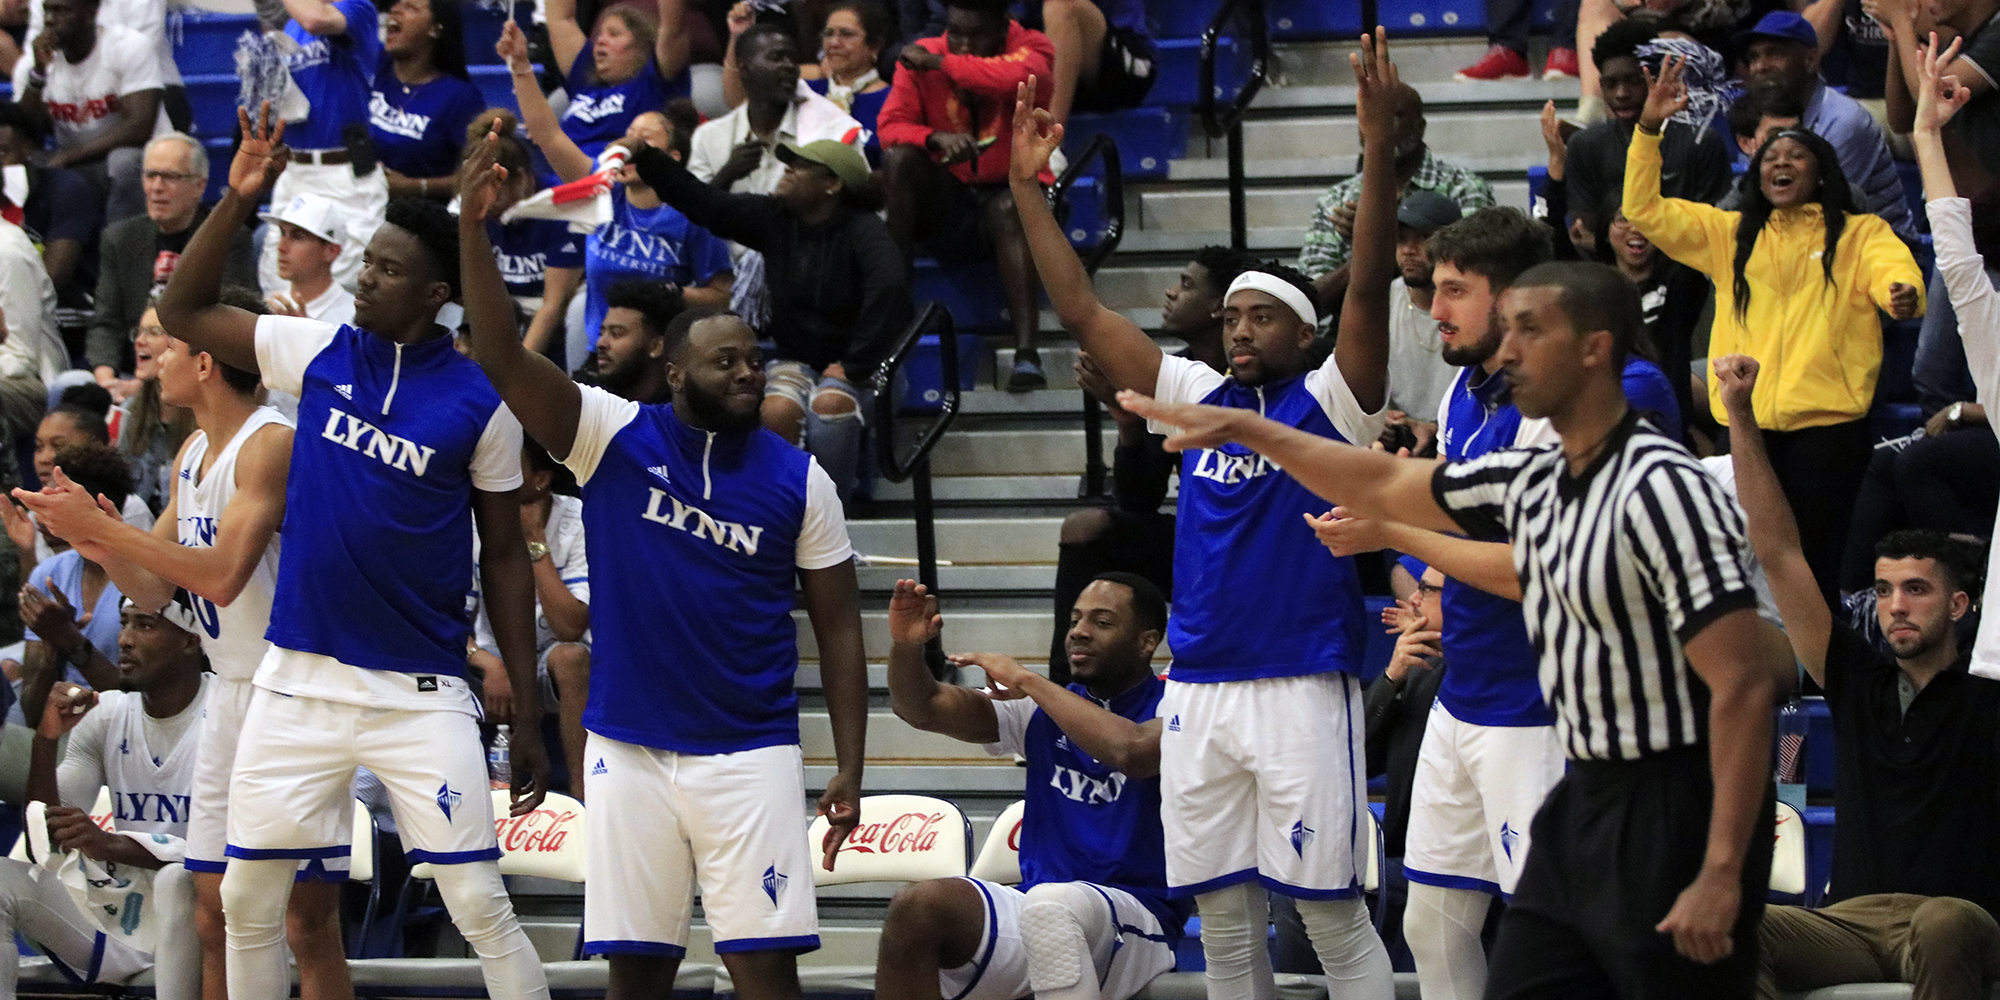 Men's Basketball Opens NCAA Regional Play on Saturday